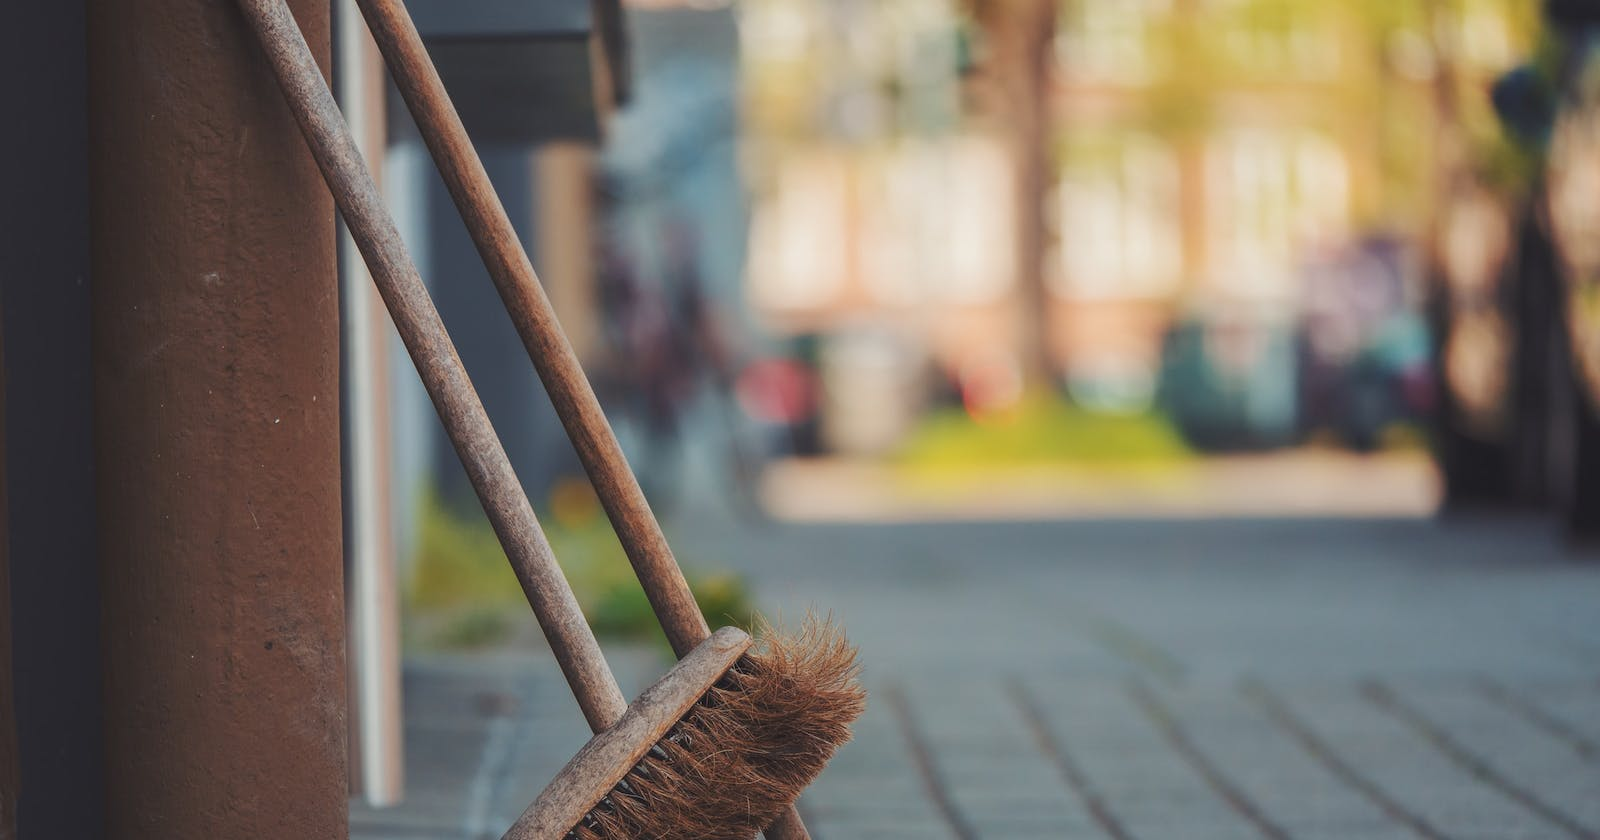 5 Tips That Will Enable You to Write Cleaner Code